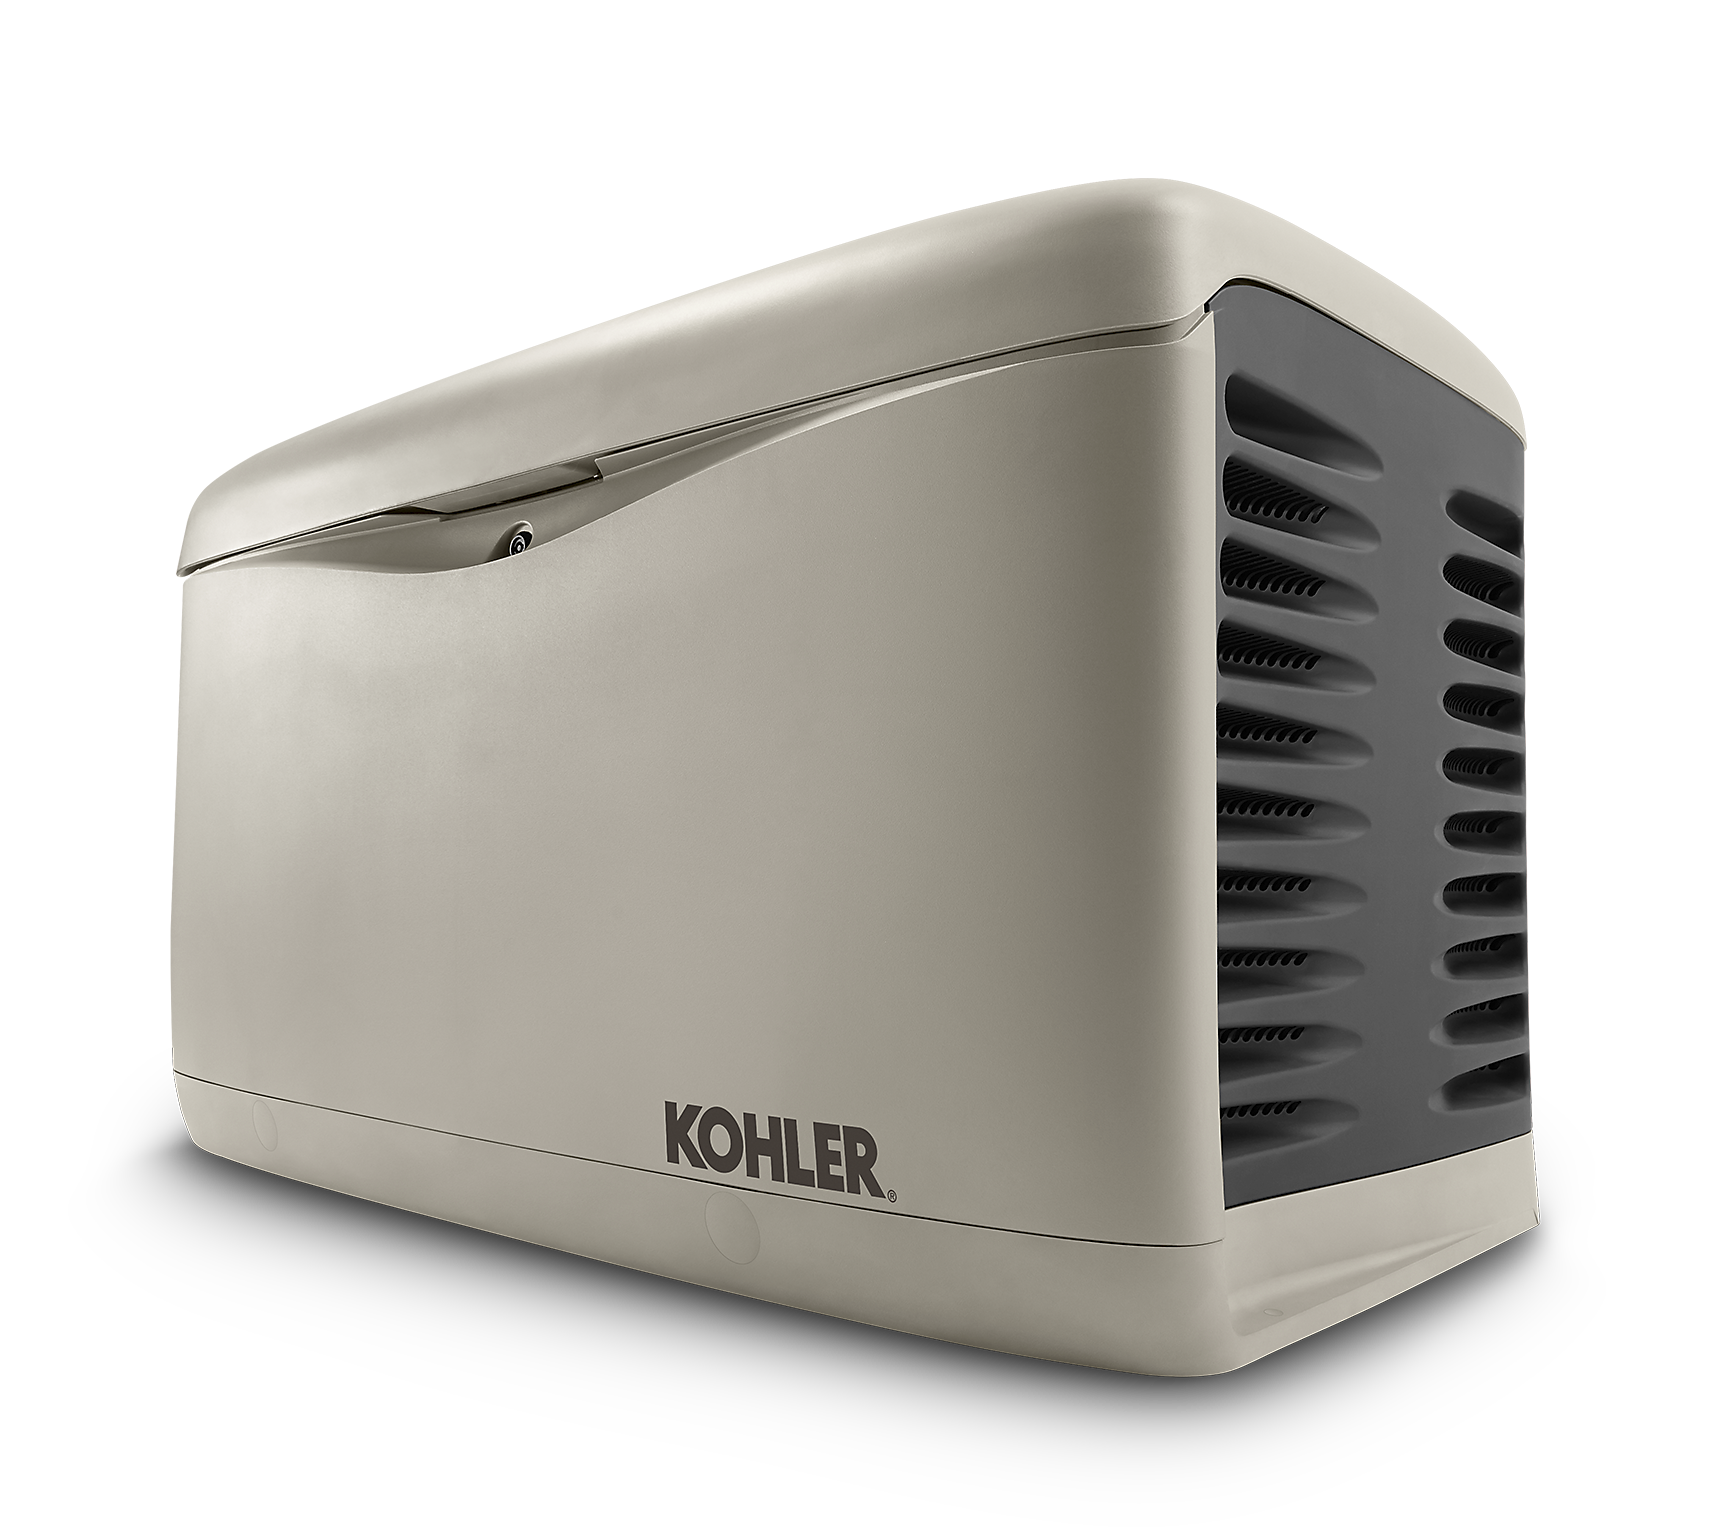 CLICK HERE TO SEE WHY YOU SHOULD INVEST IN A KOHLER WITH DUTCH!